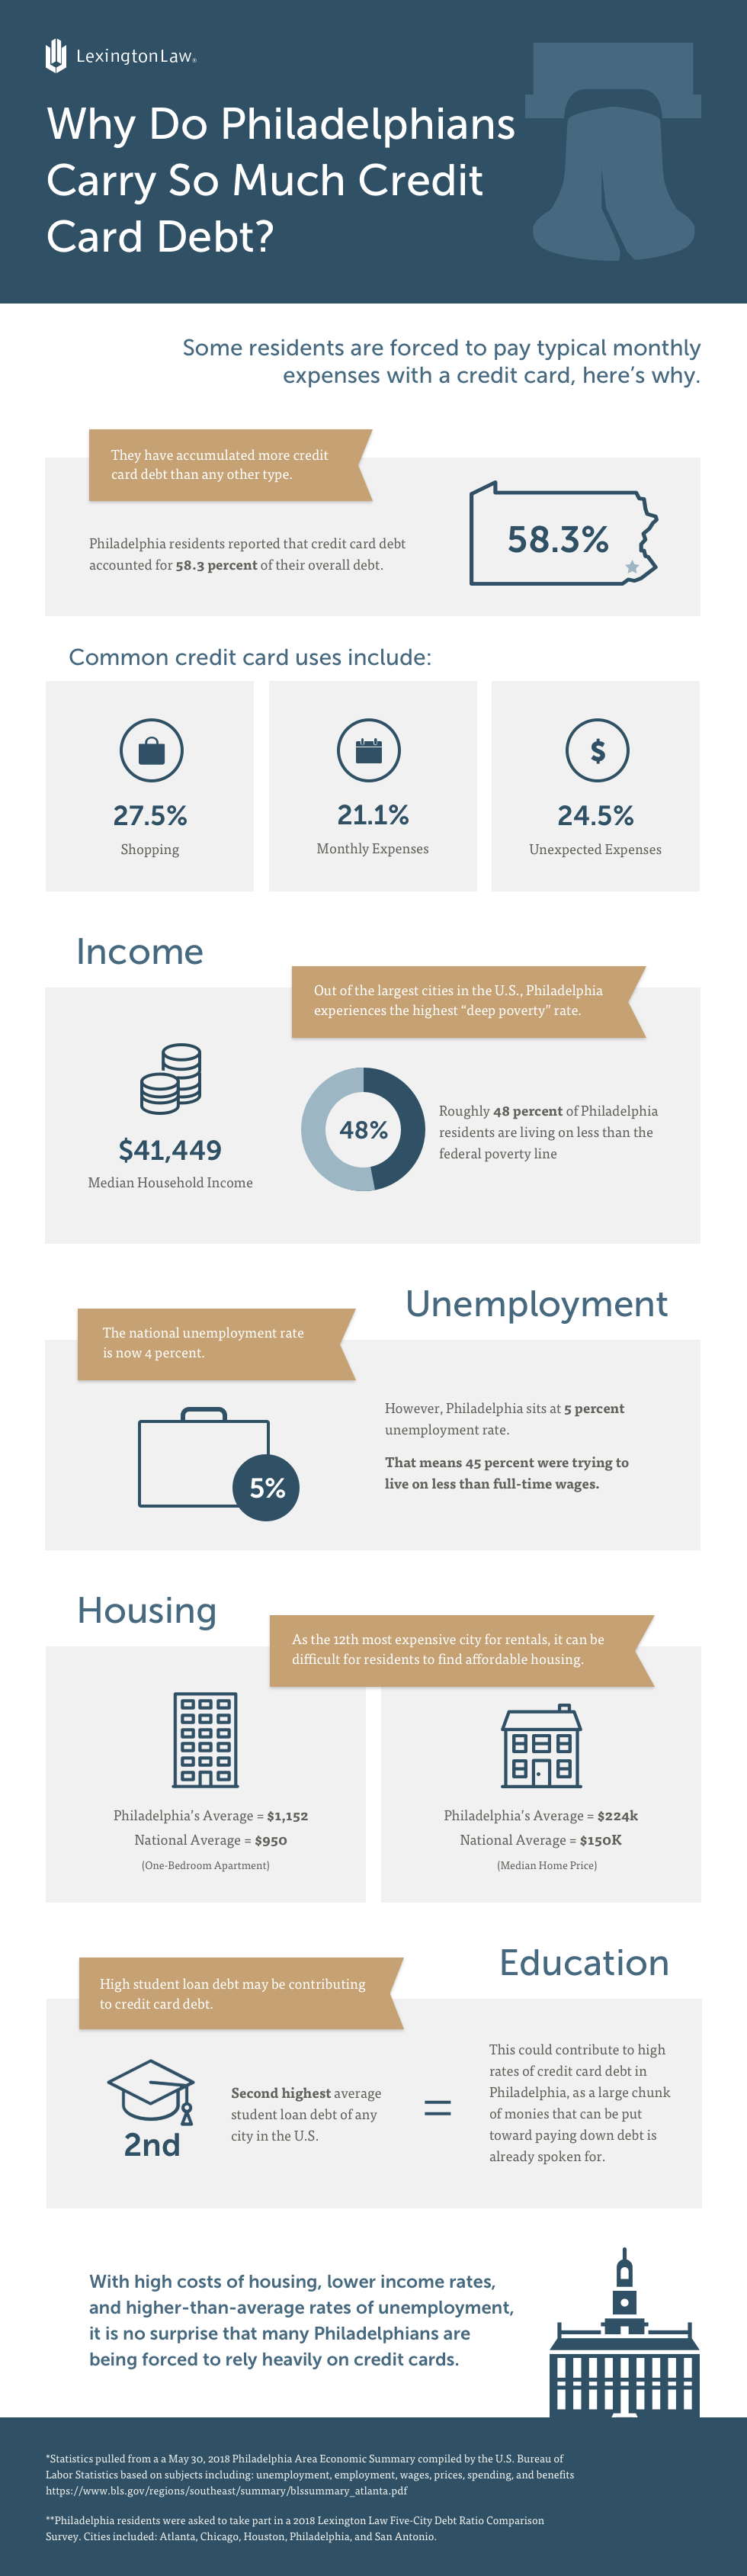 Philadelphia_Credit_Card_Debt_Infographic